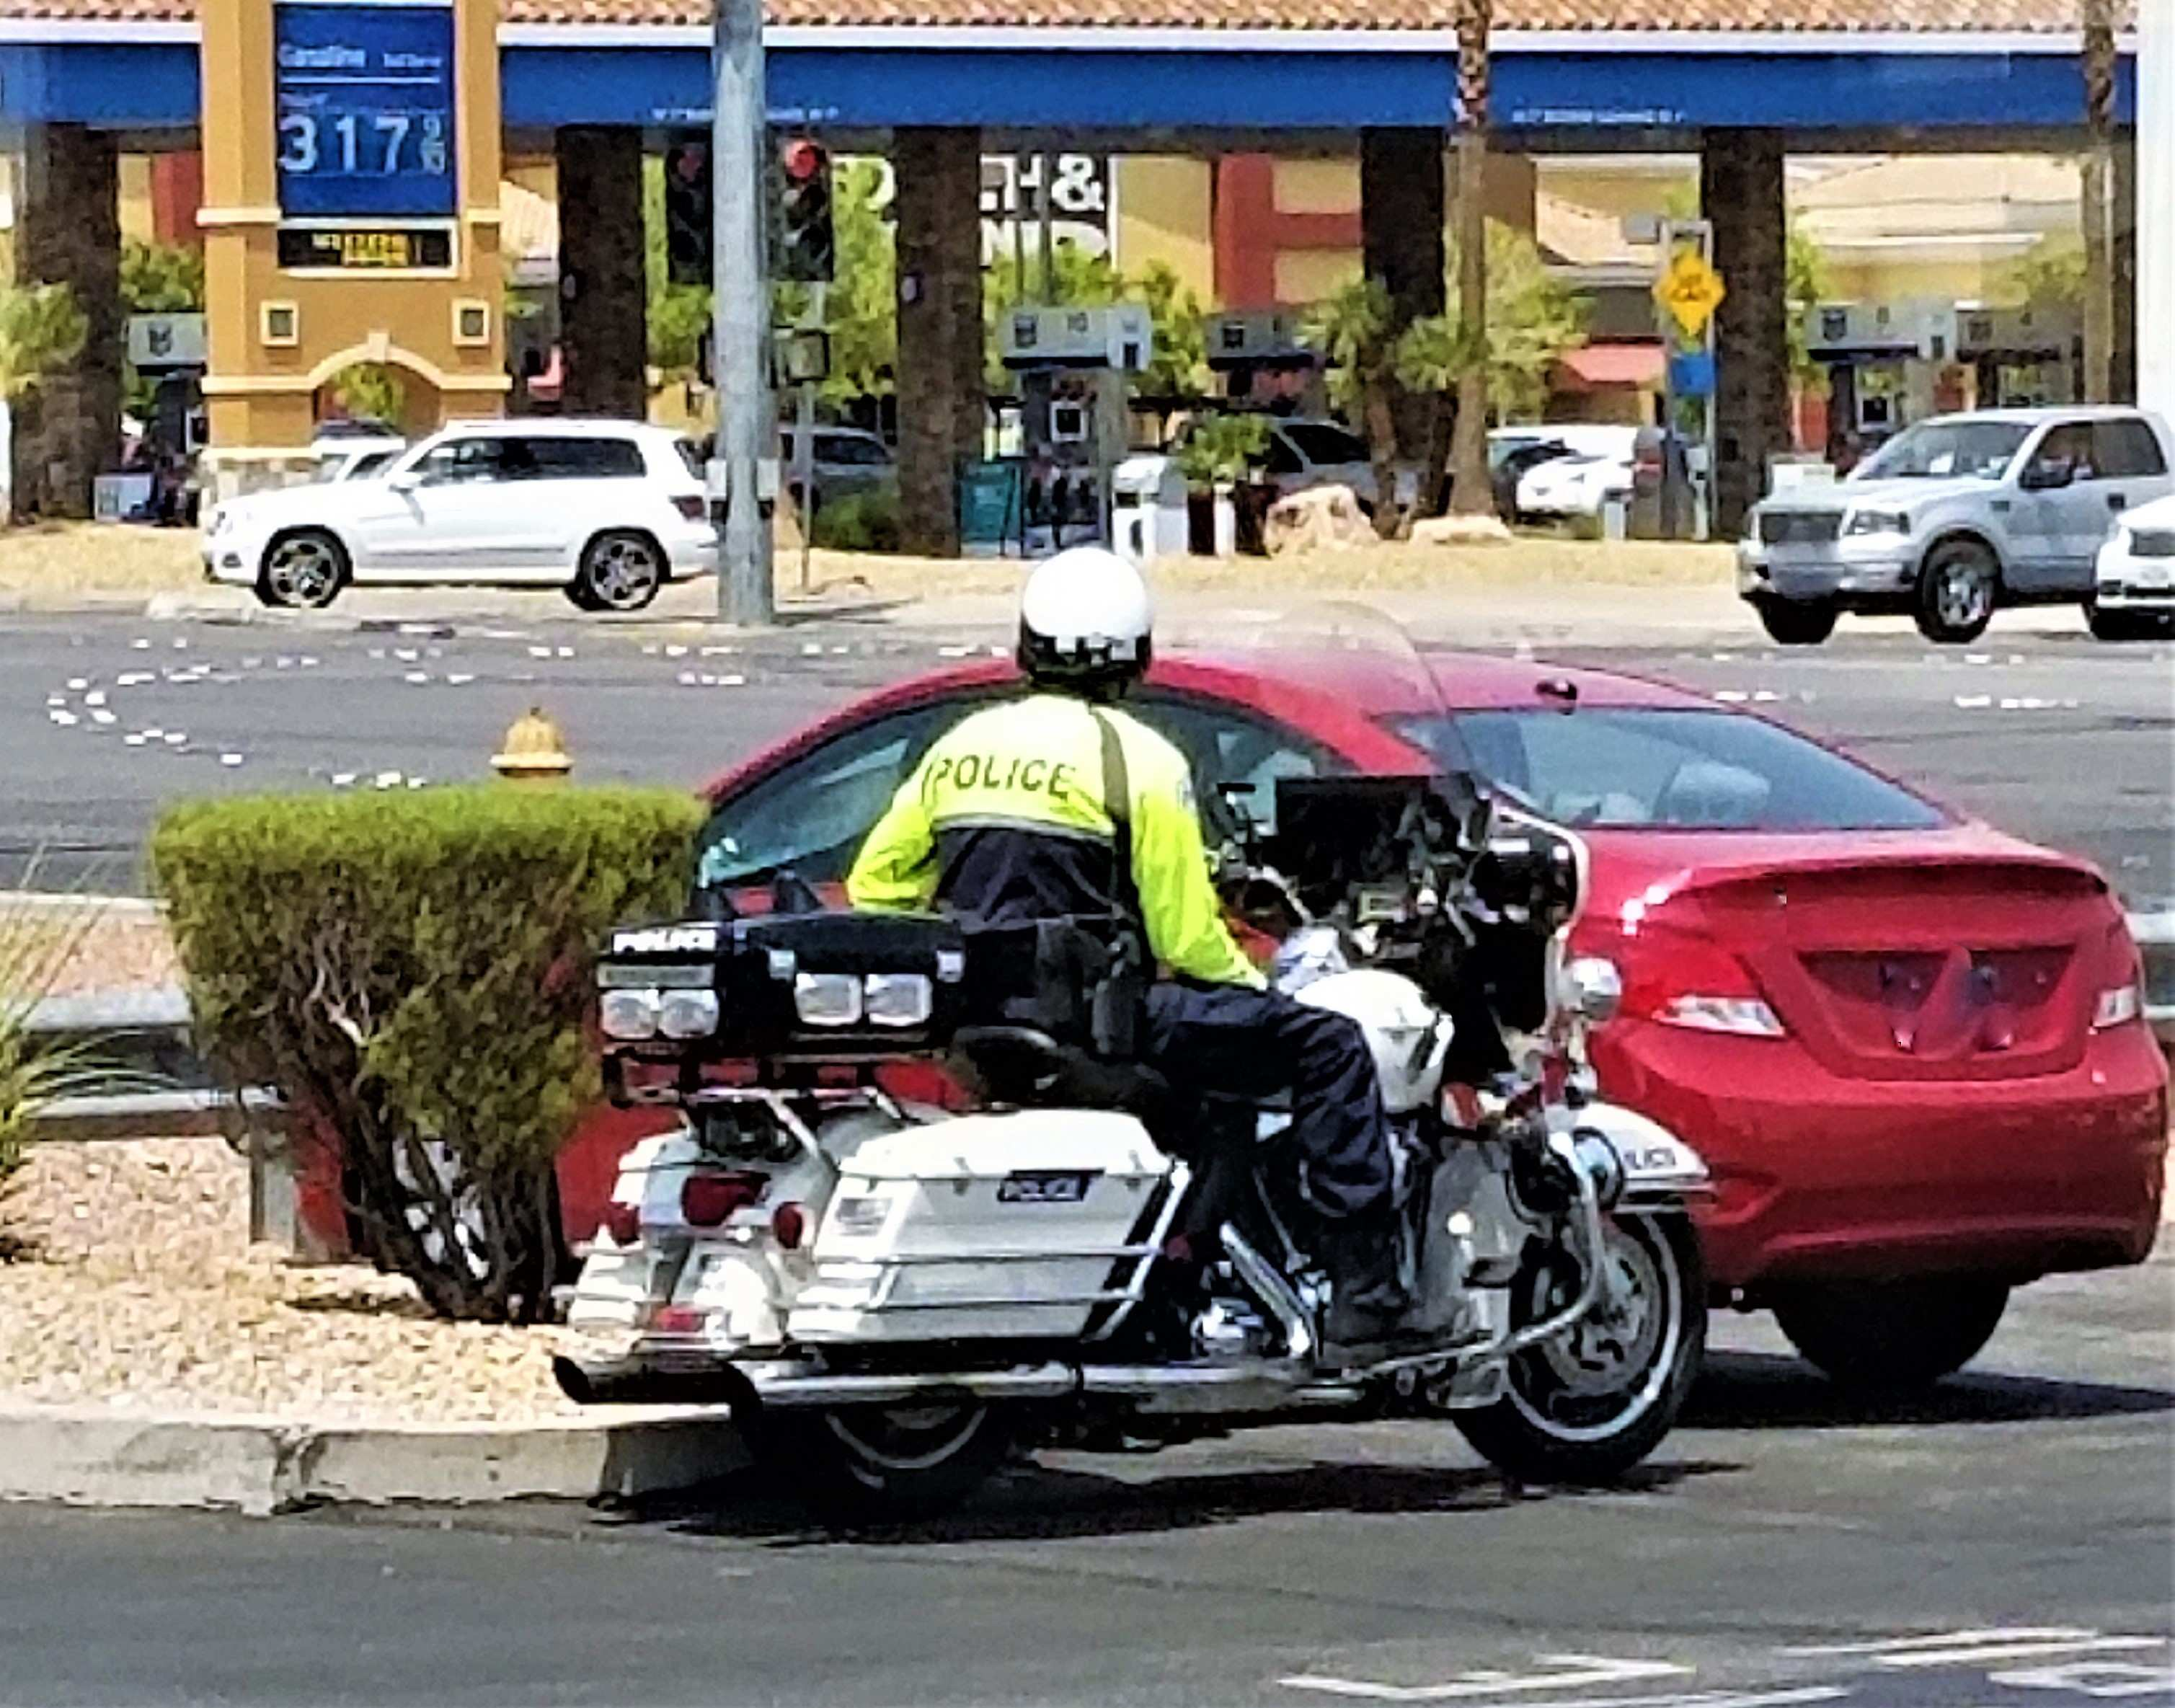 motorcycle-law-enforcement-implementing-traffic-laws-ph-content-image